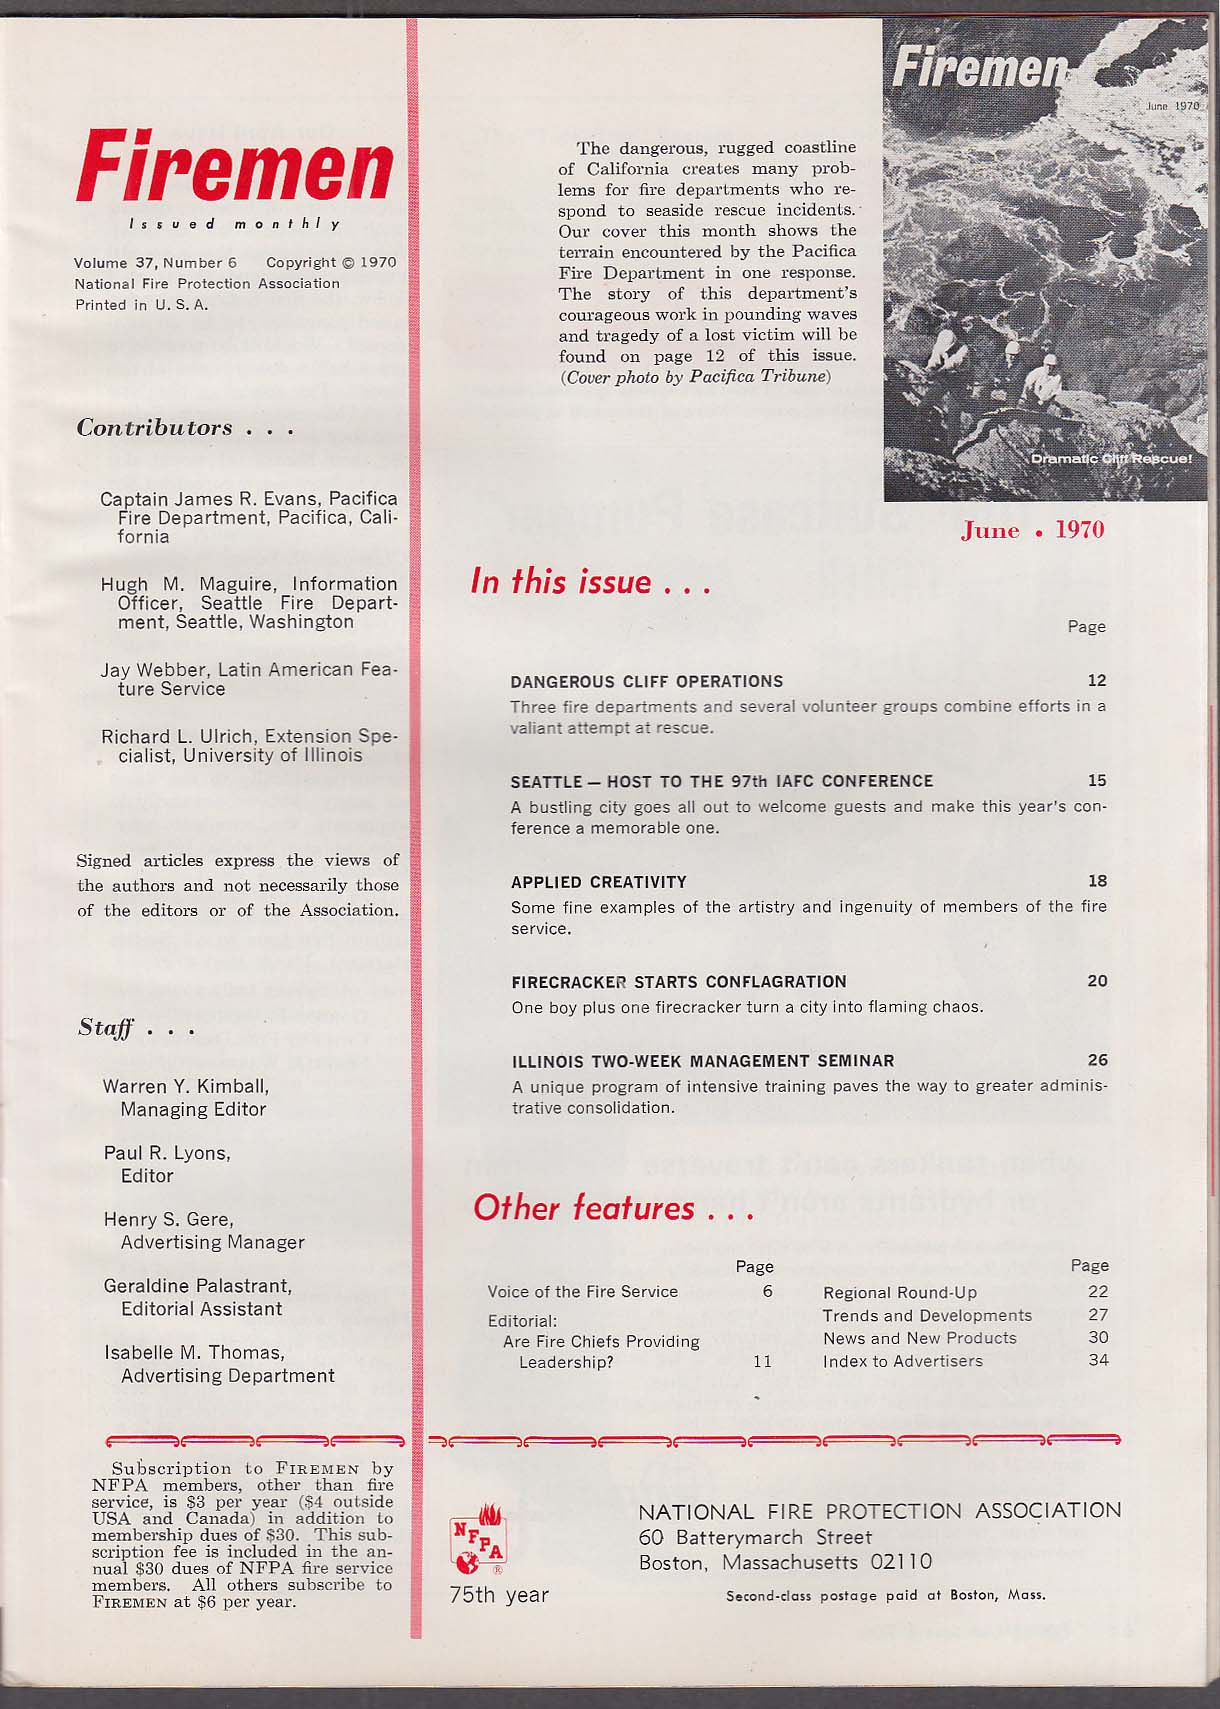 FIREMEN Cliff Rescue Operations; Seattle Conference; Firecrackers ++ 6 1970